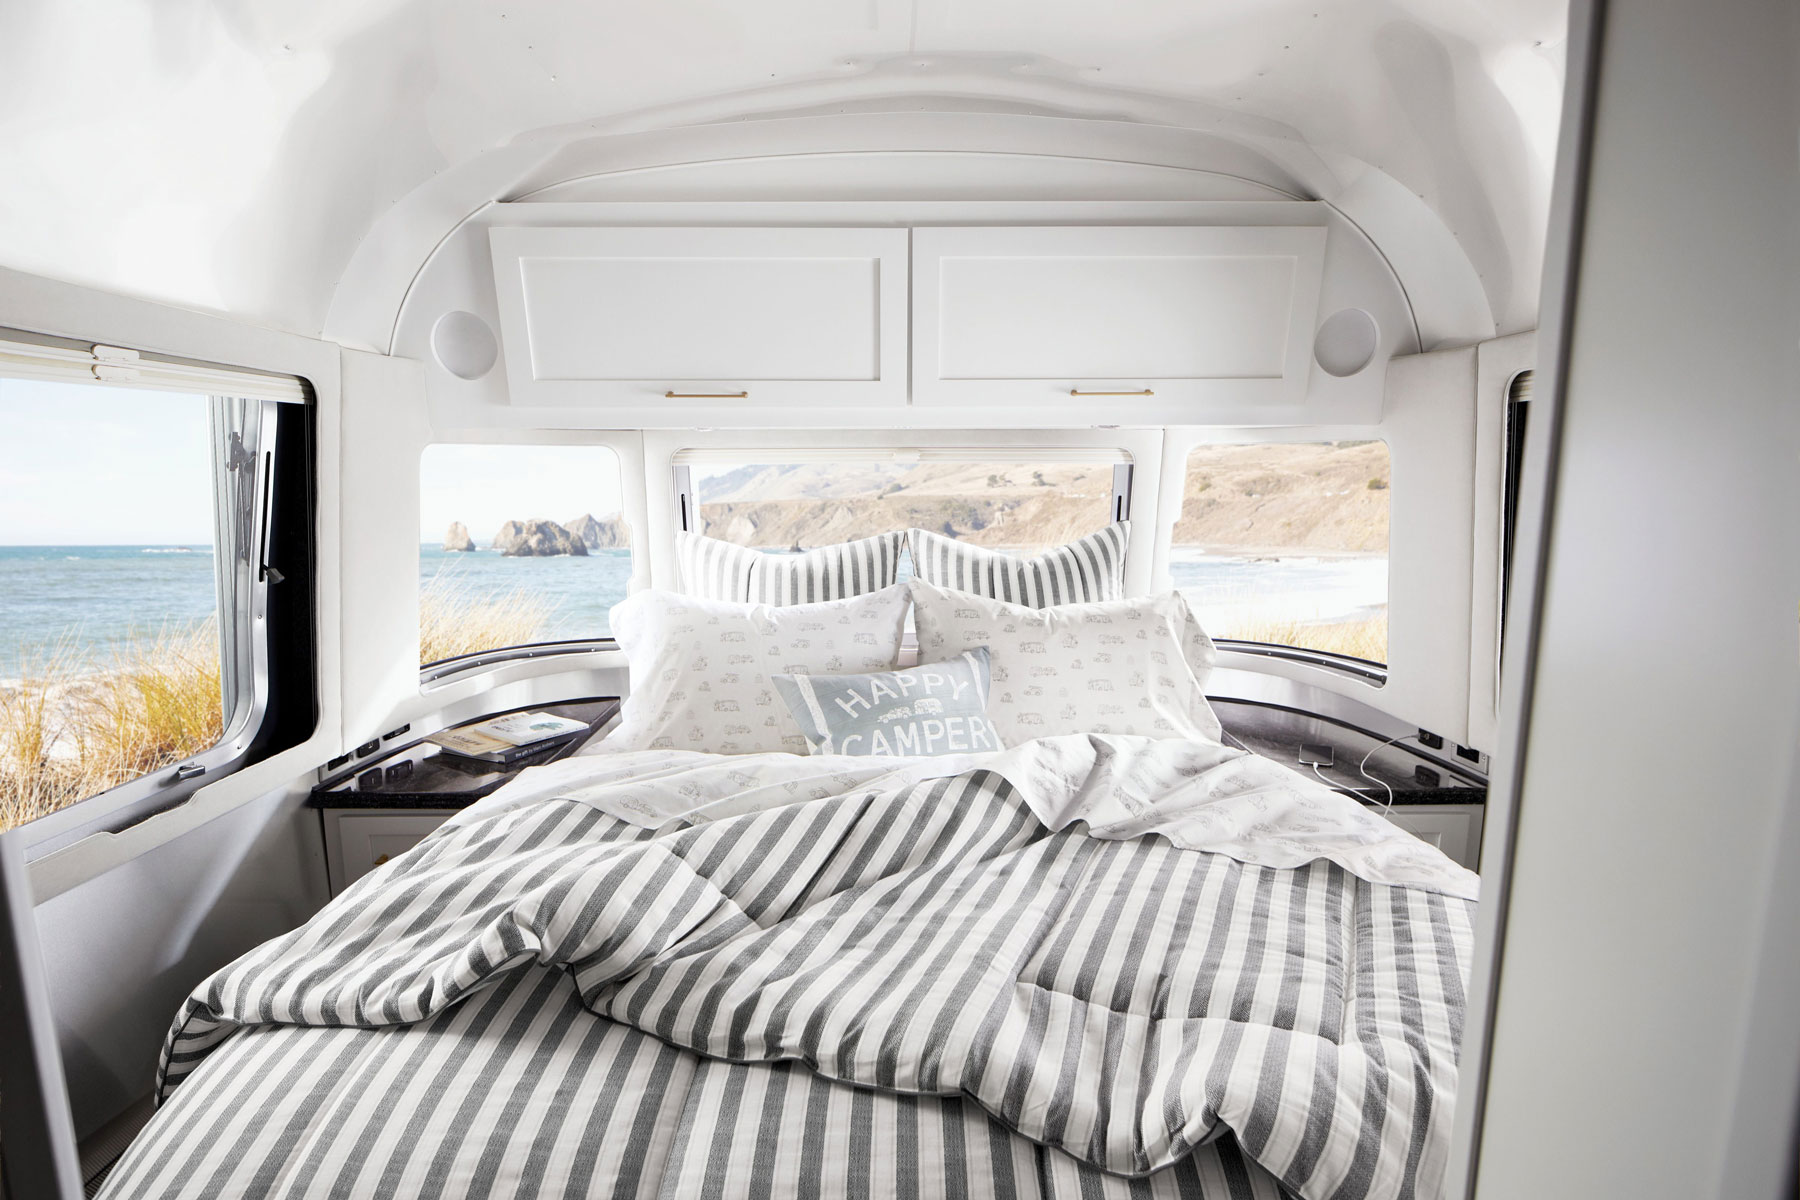 Bed inside Airstream trailer